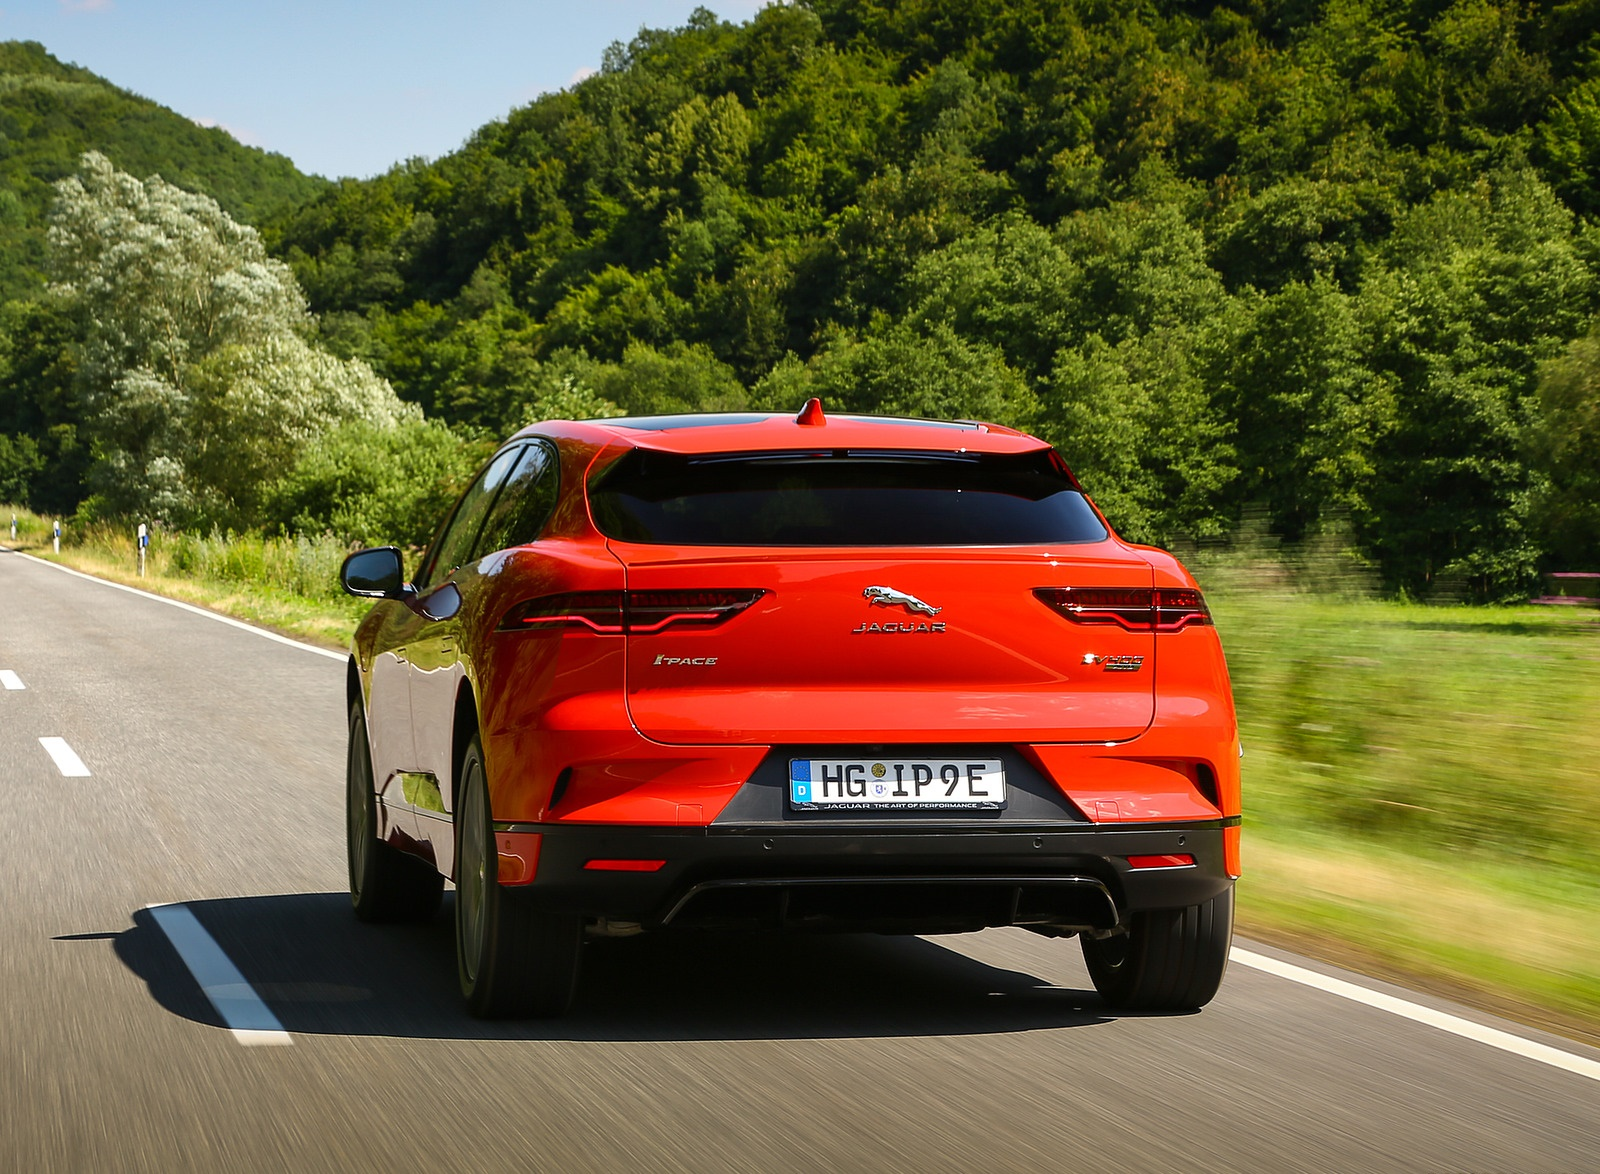 2019 Jaguar I-PACE EV400 AWD HSE First Edition (Color: Photon Red) Rear Wallpapers #31 of 192